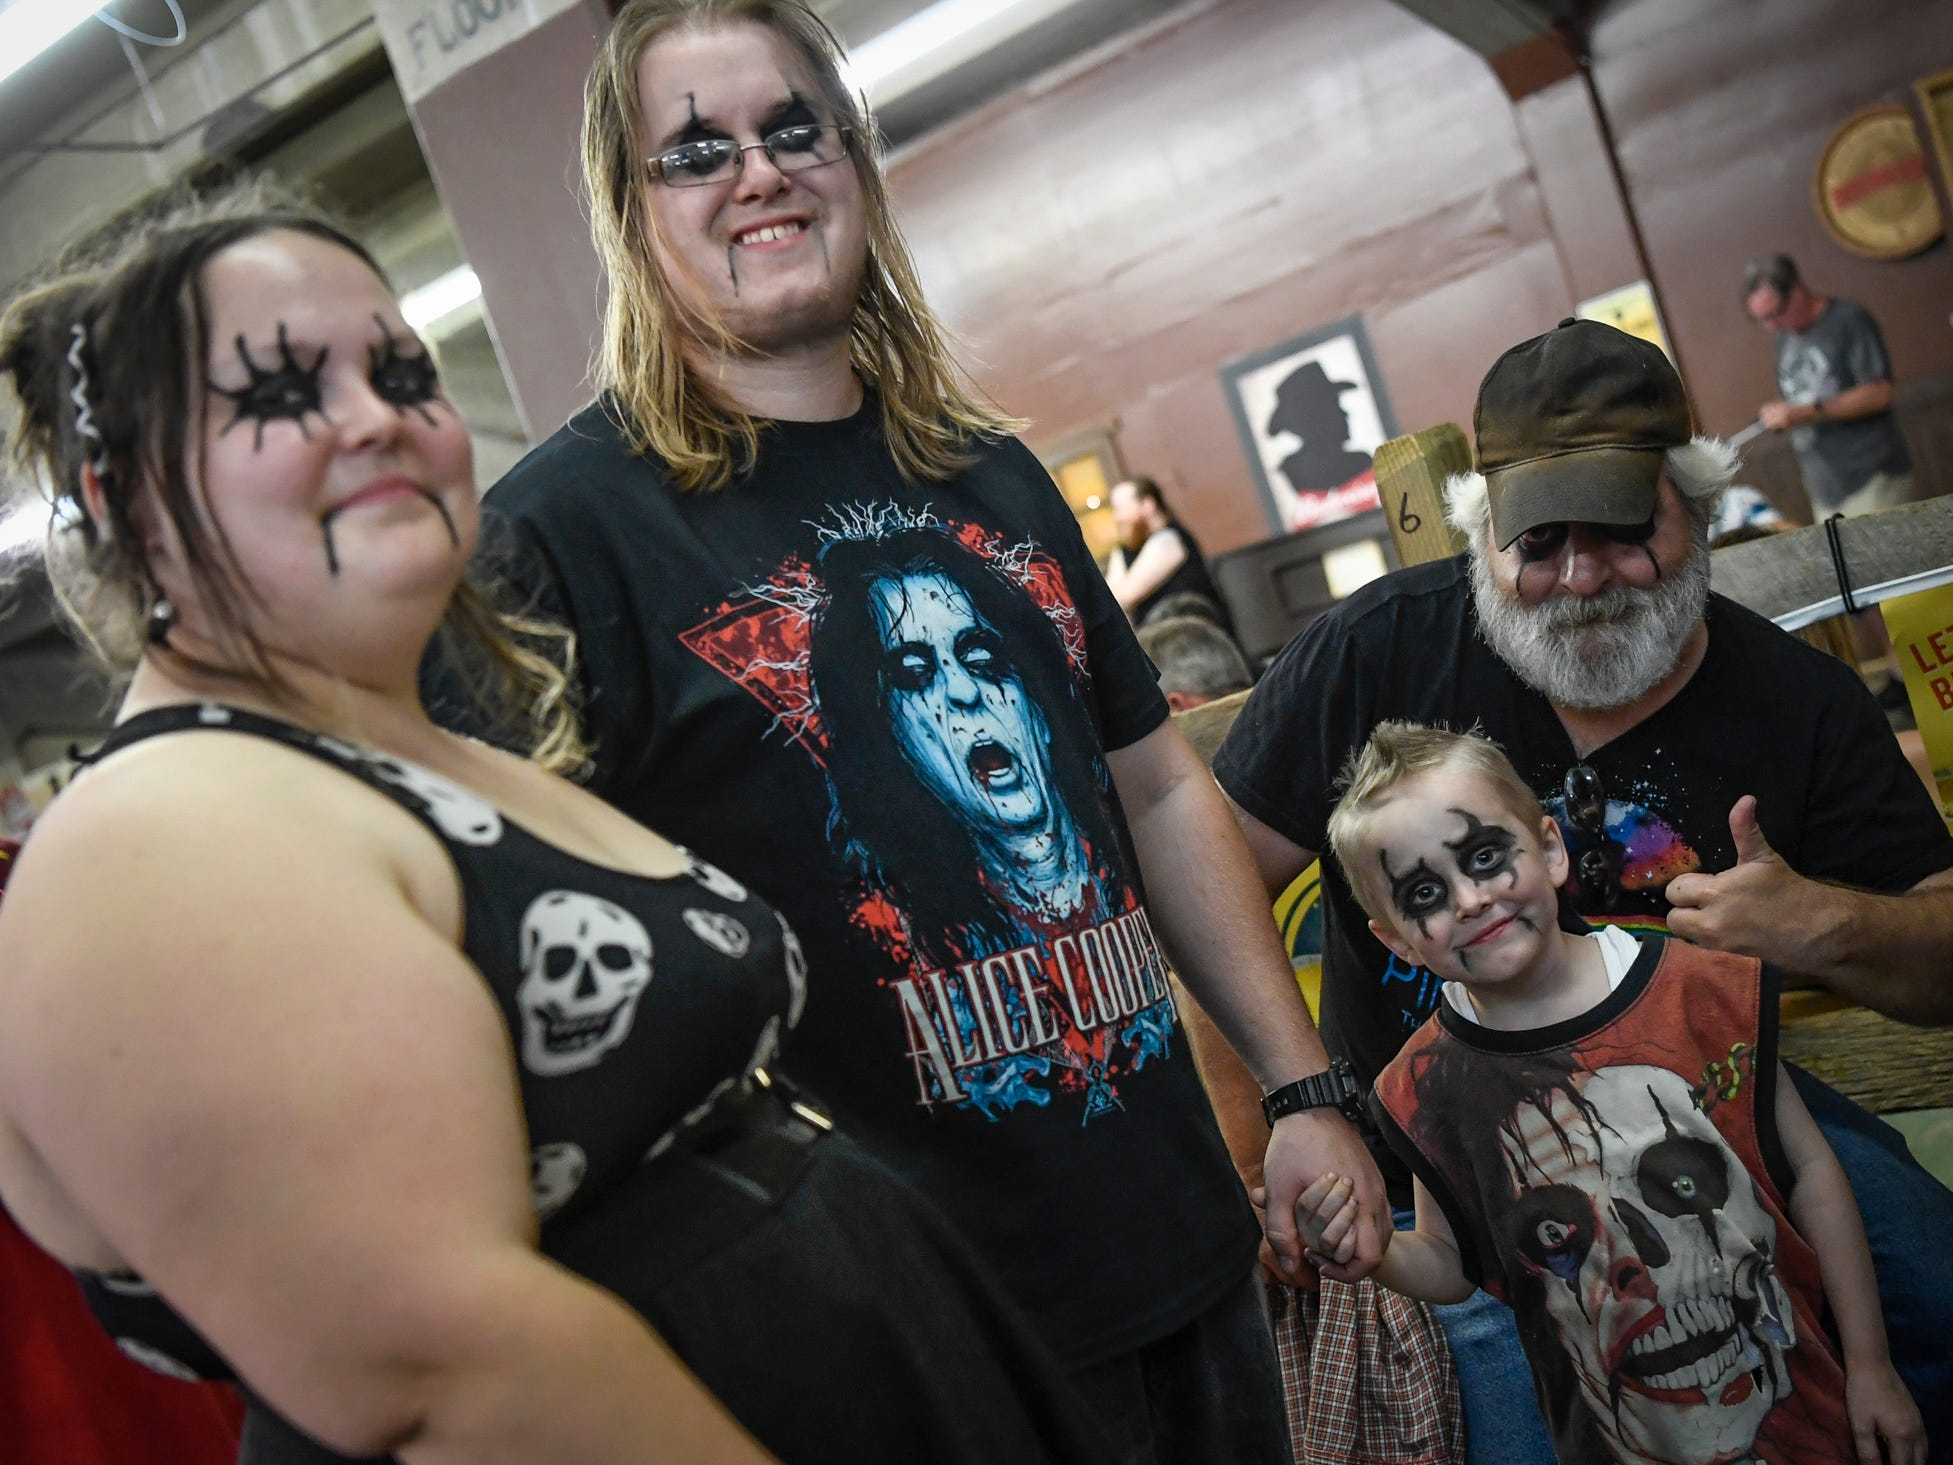 Three generations of Alice Cooper fans, Haylei Hebert, left of York, Matthew Yeager, Sebastian Strayer, 5, and grandfather Dave Warner, all of Harrisburg, wait in line to get into the York Fair Grandstand stage, Friday, September 7, 2018.